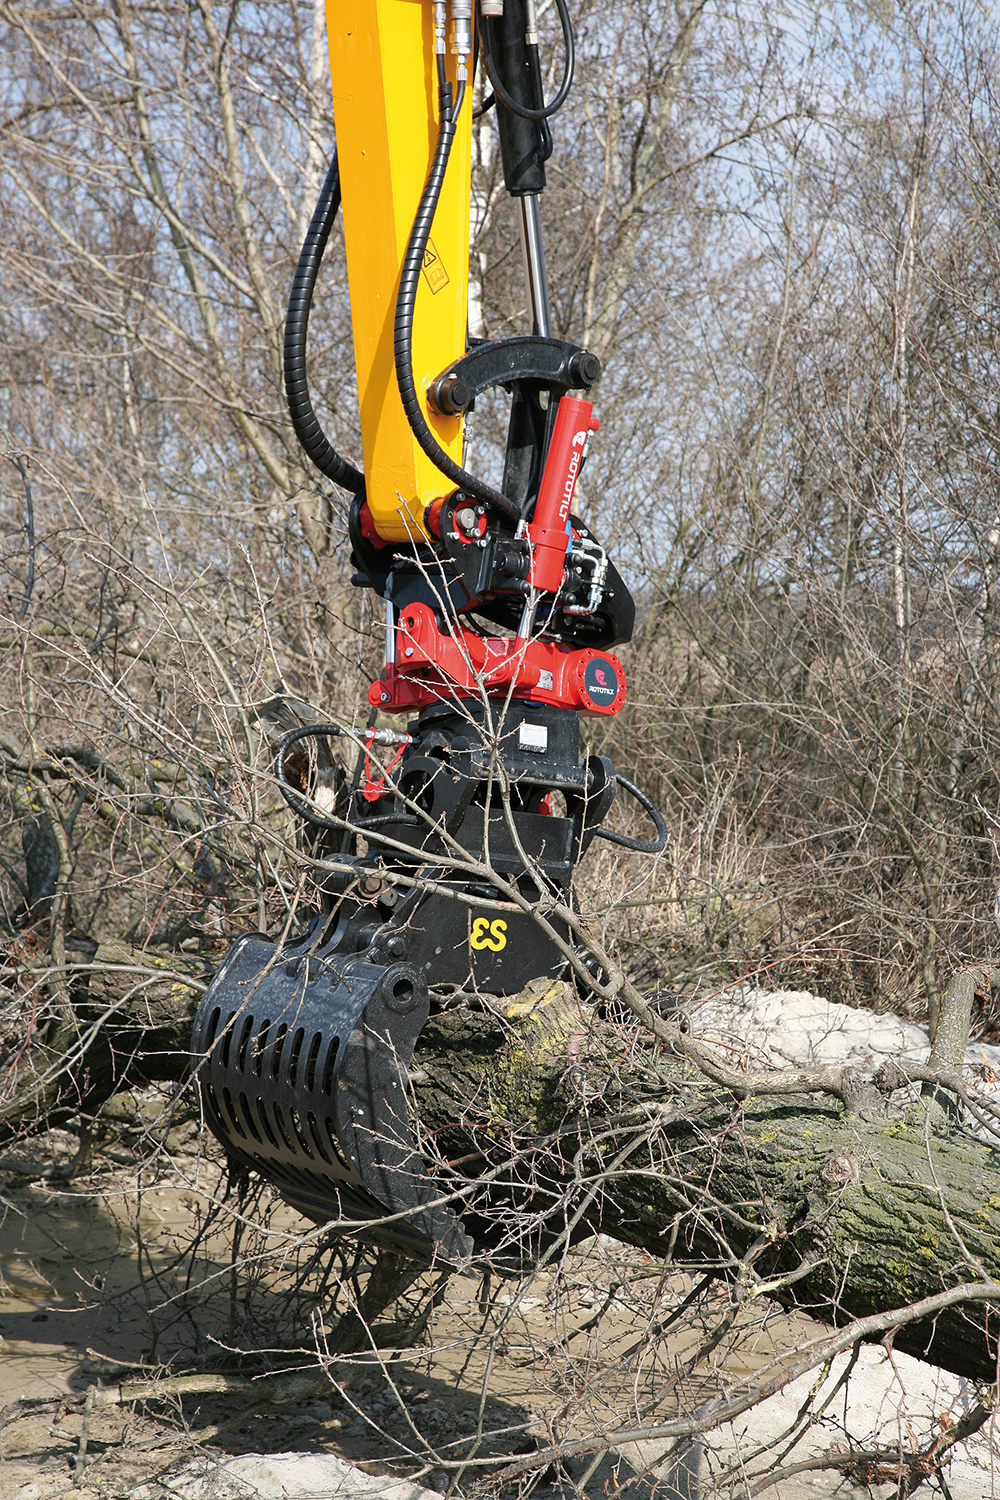 JCB Hydradig - revolutionaire machine getest (12)